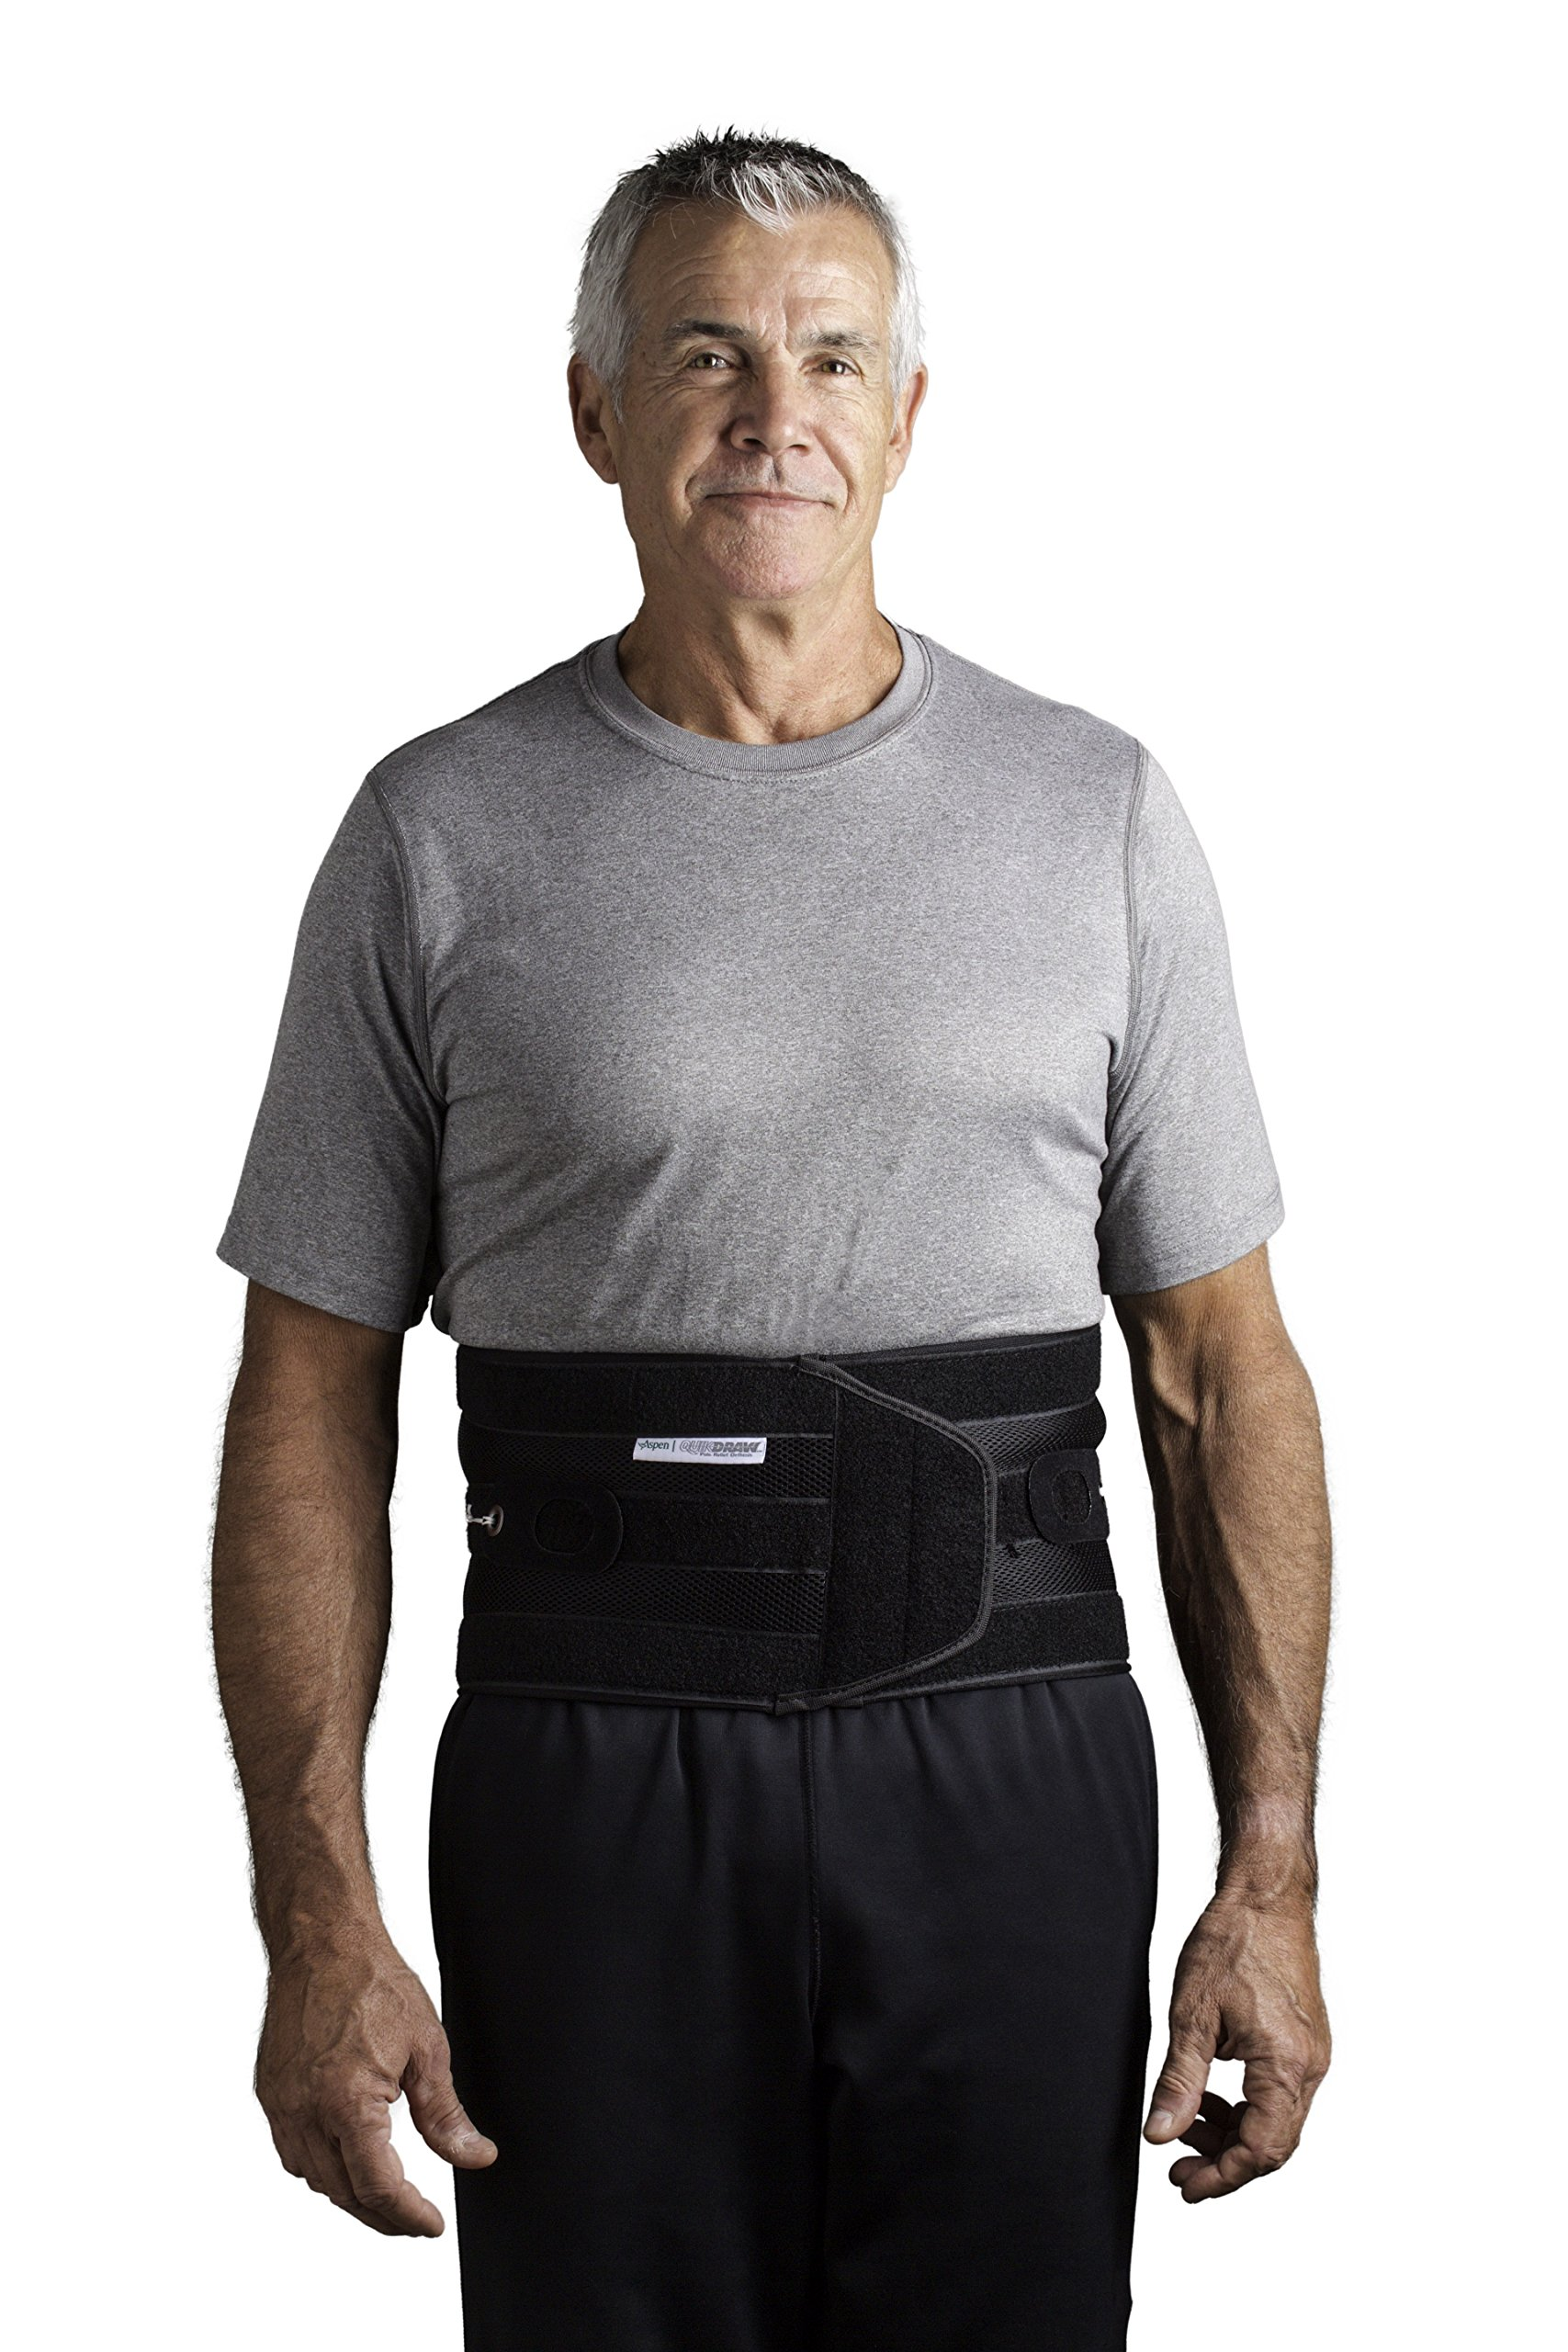 Aspen Quickdraw PRO Lower Back Brace, Back Brace for Lower Back Pain Relief, Back Support for Women and Men, Black Small (26-32 inches) Waist